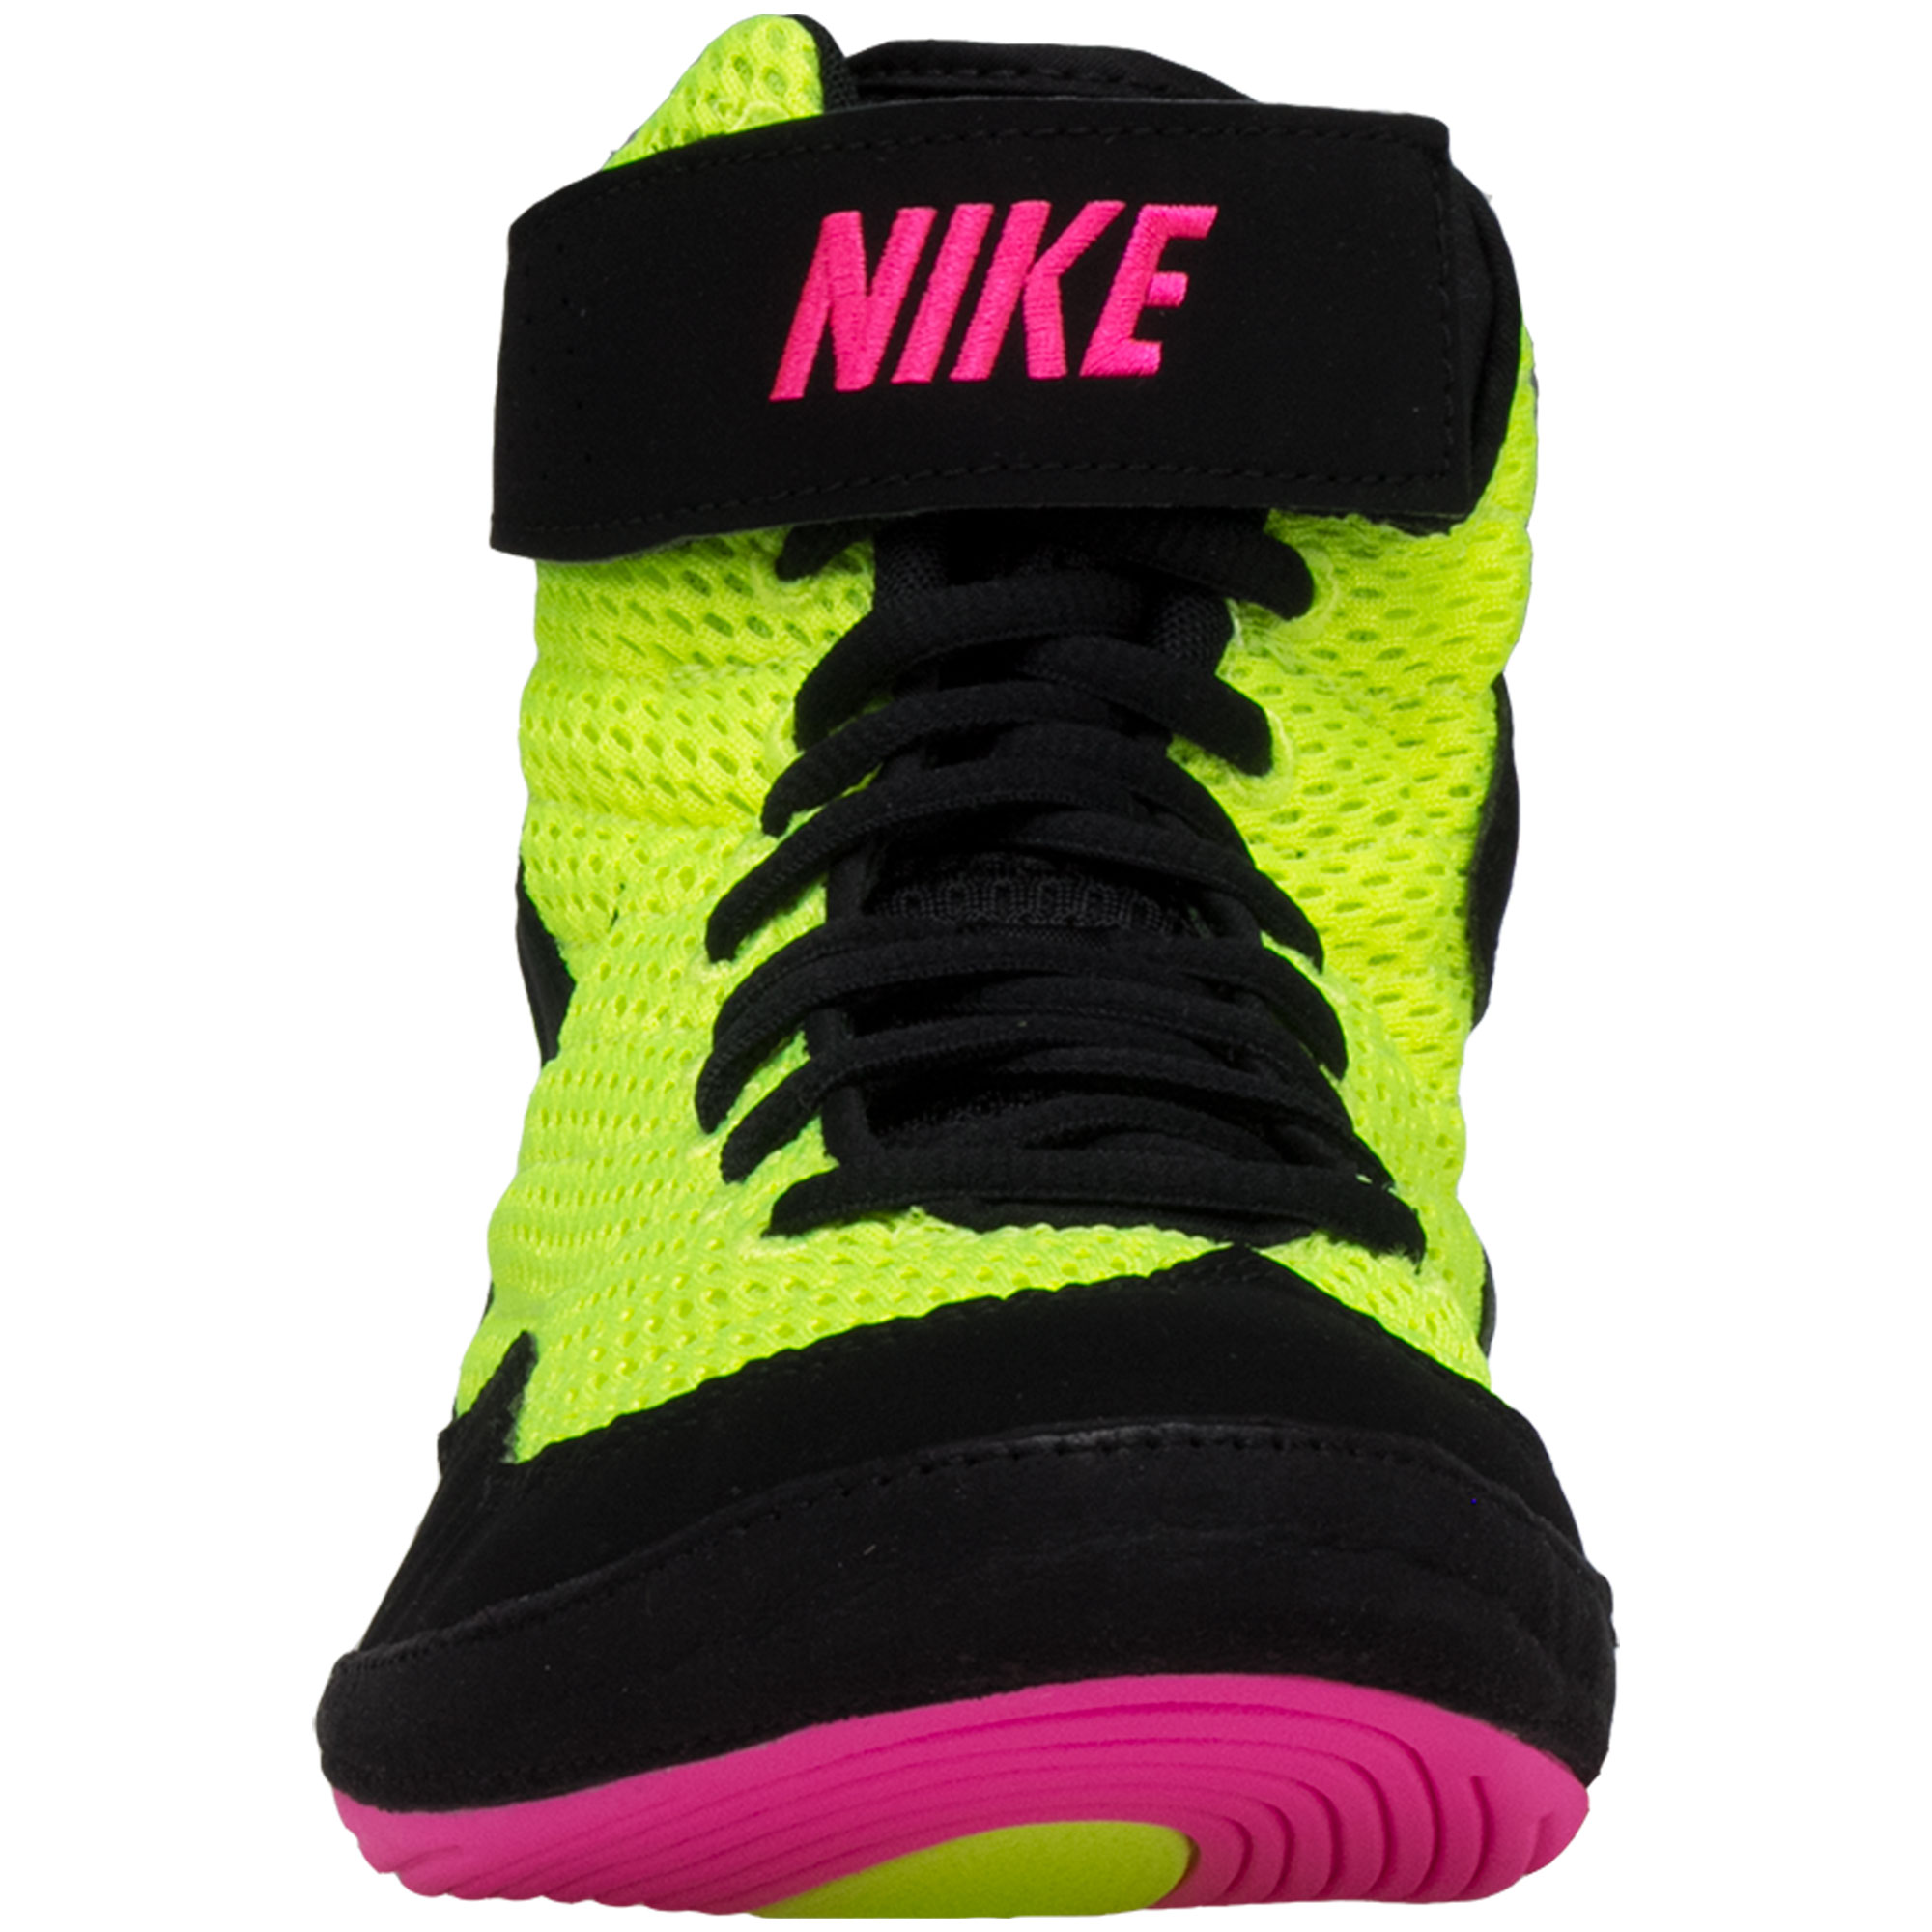 126119cfbeccae Nike Inflict 3 Unlimited Shoes